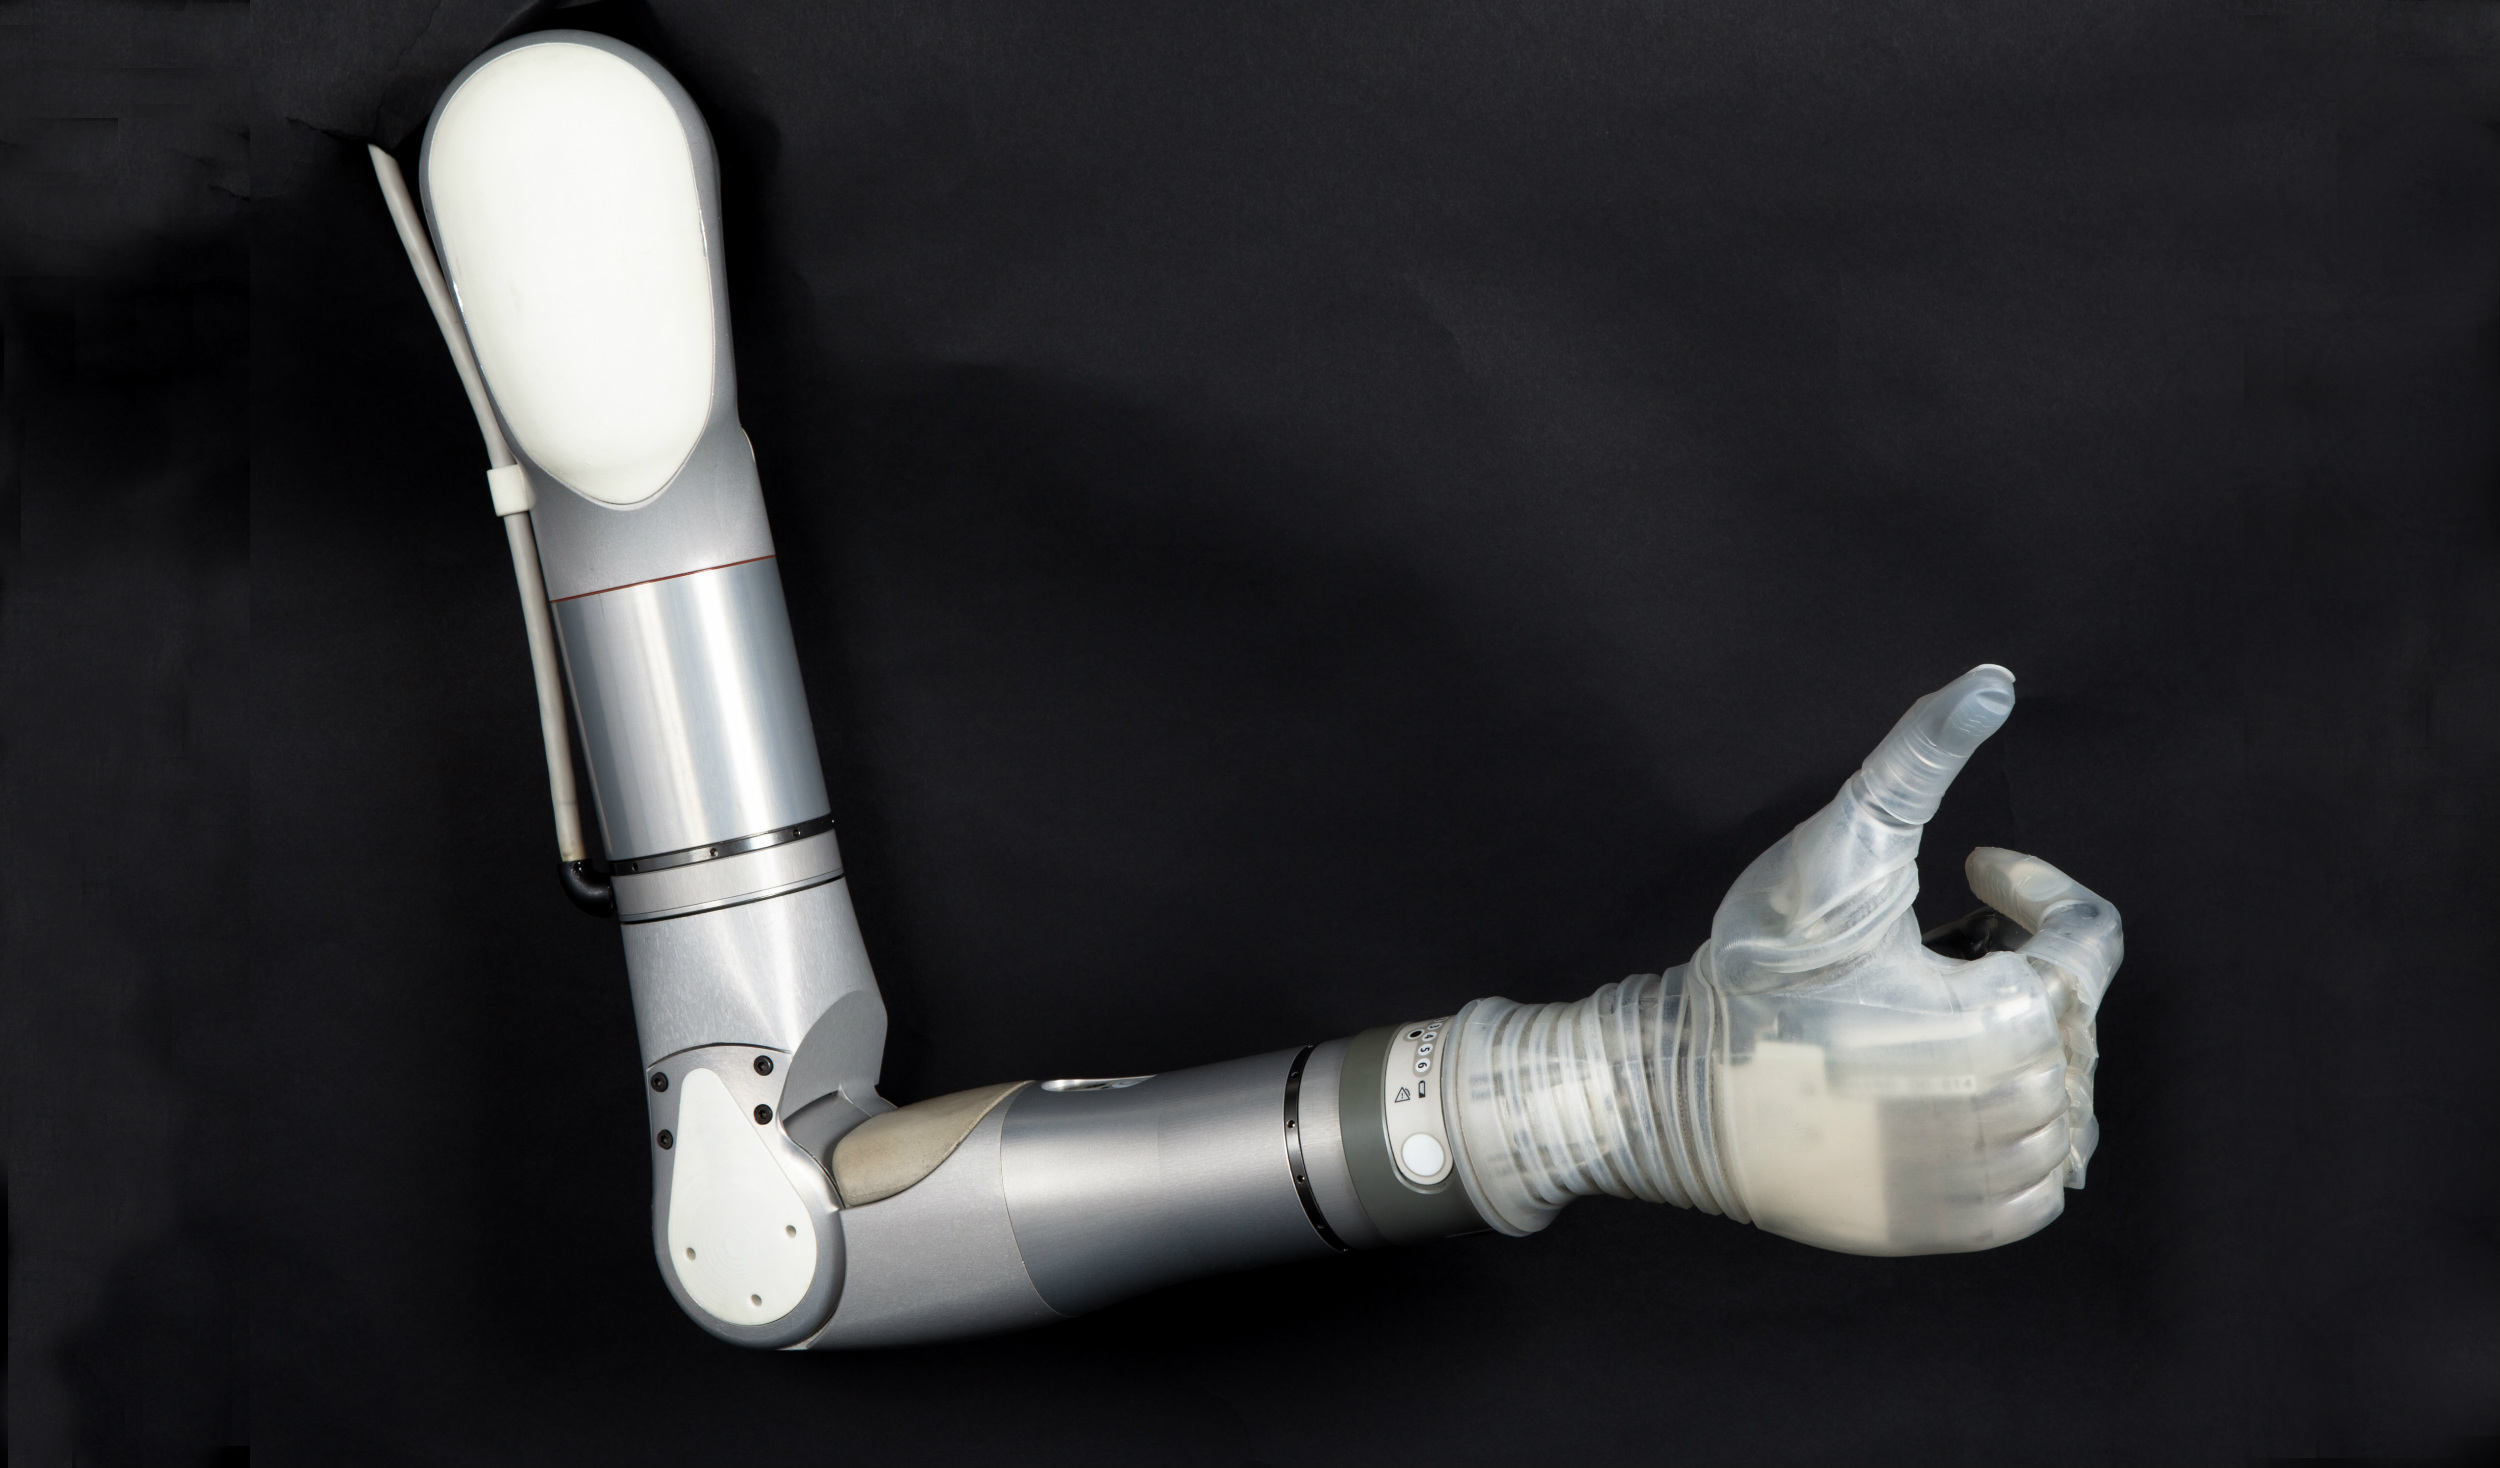 DARPA, VA-backed robotic arm set to launch in 2016